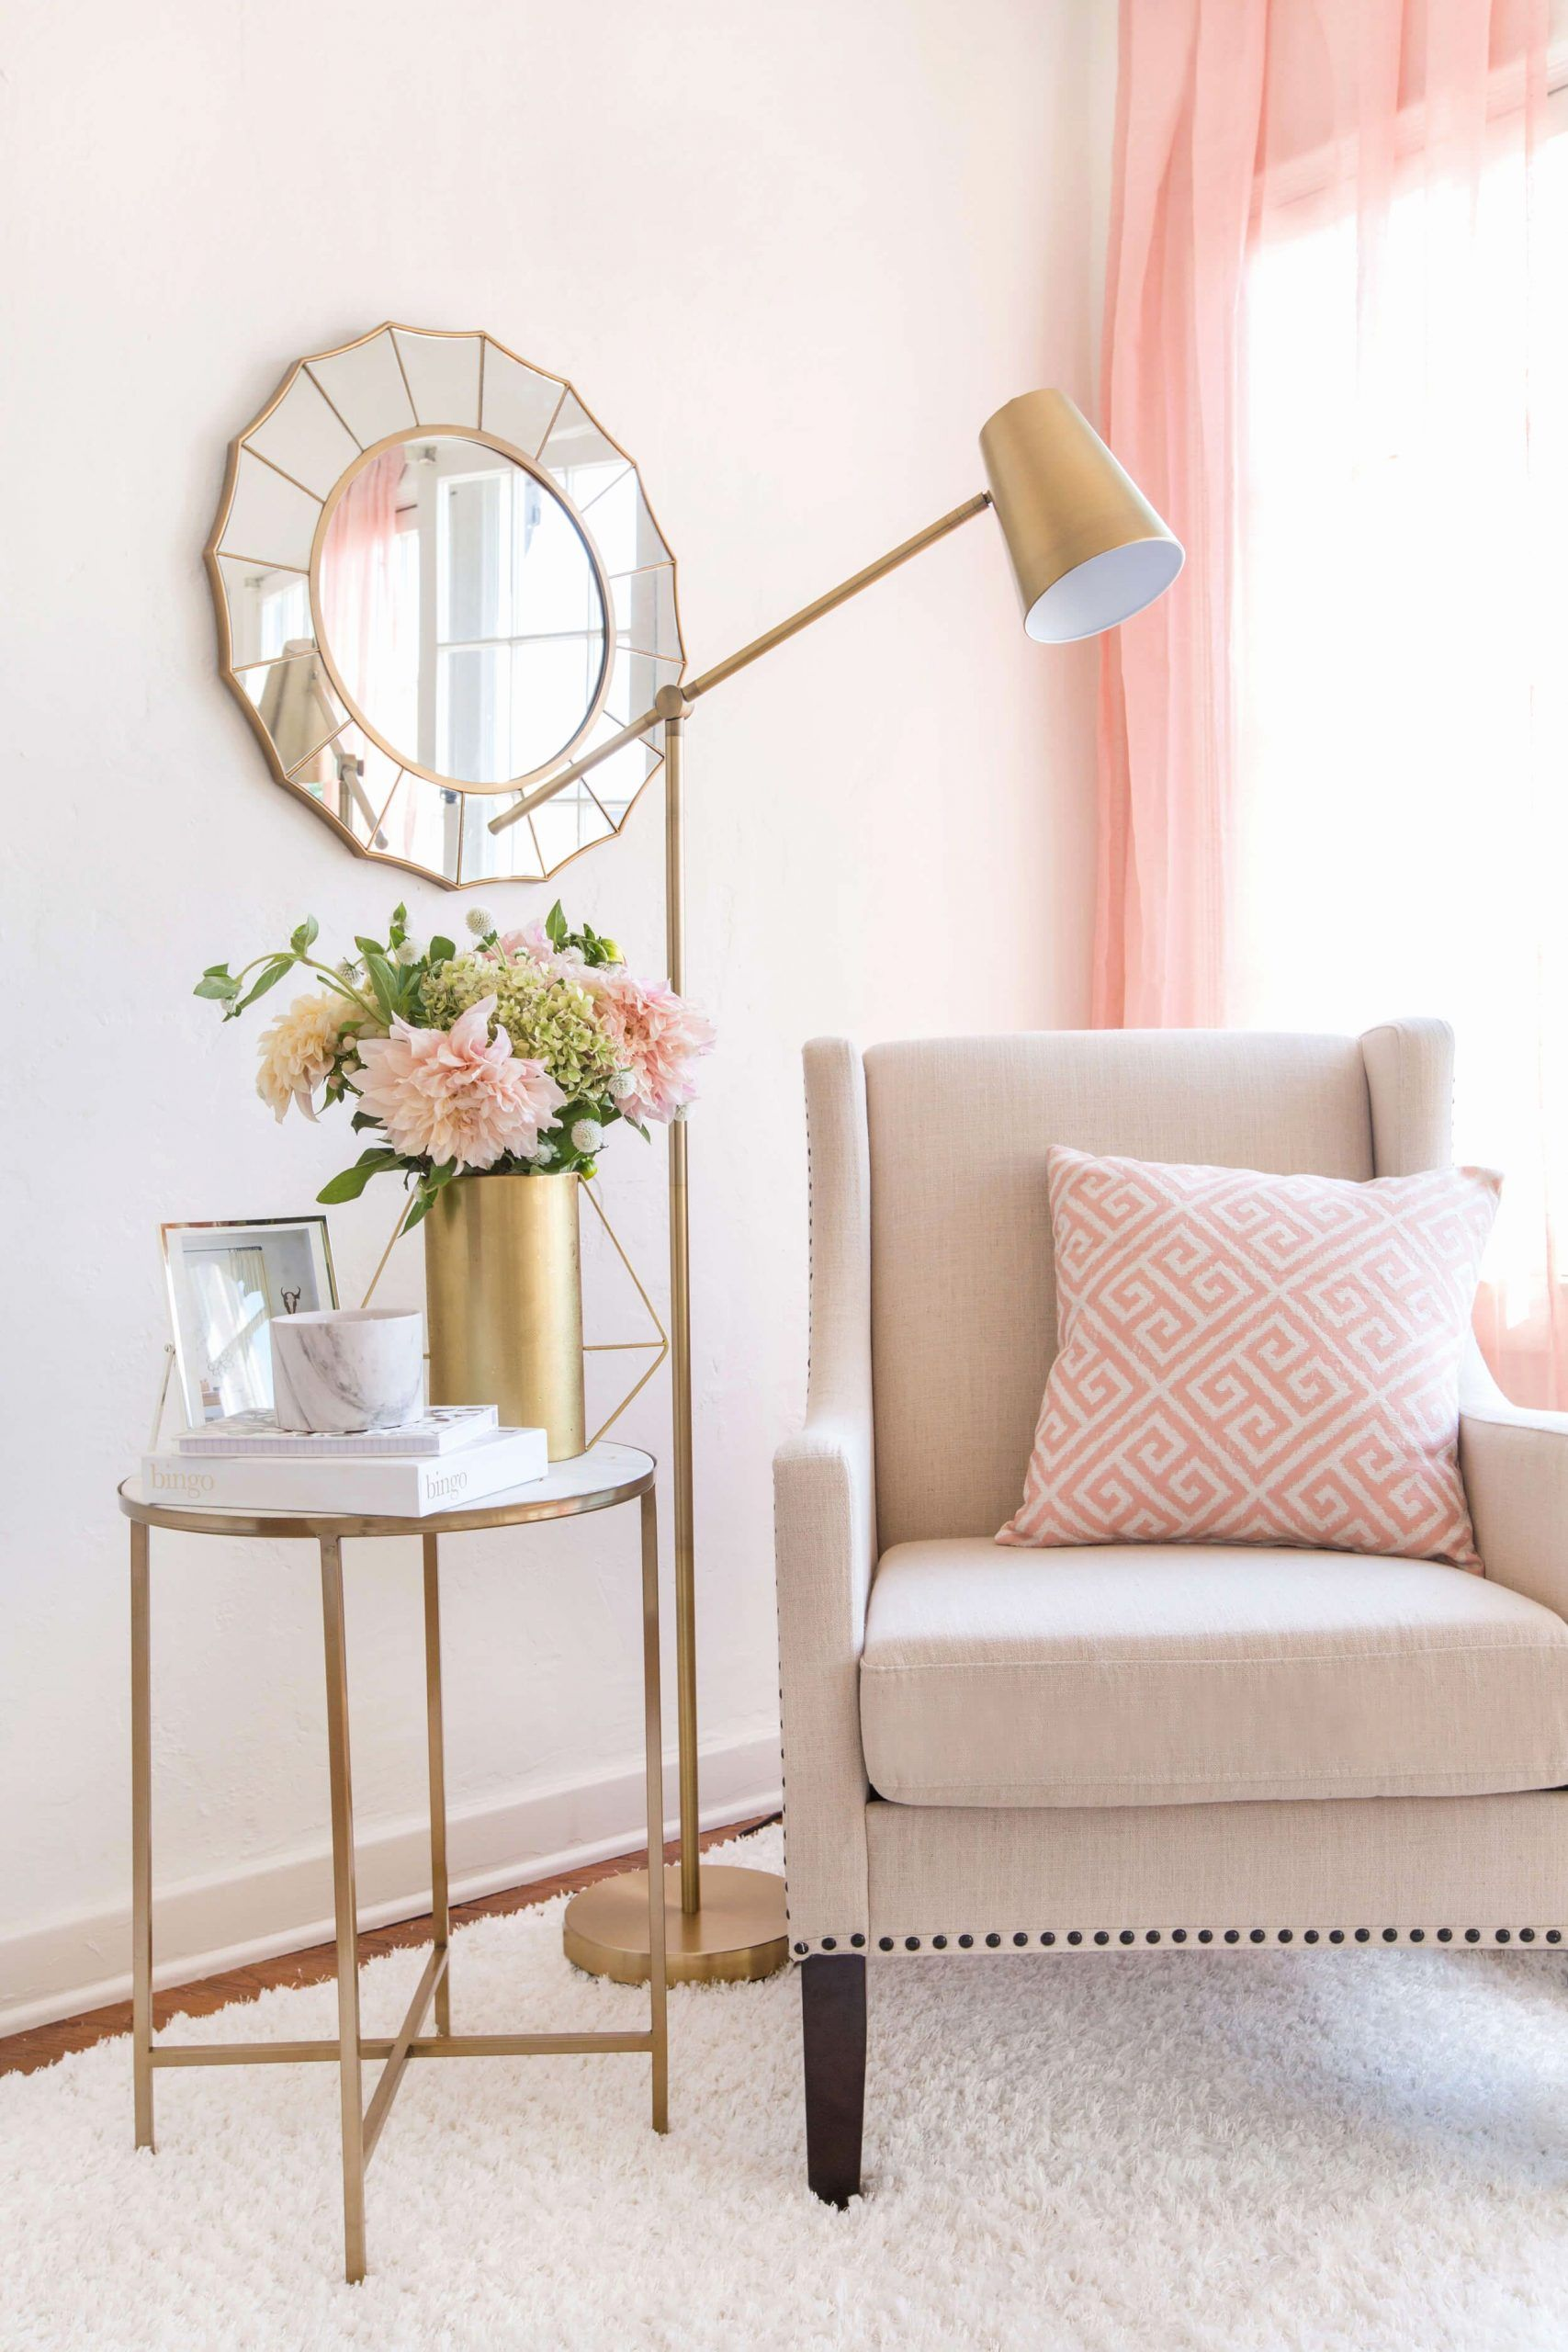 Paris Bedroom Decor Target Inspirational Find Your Style Luxe and